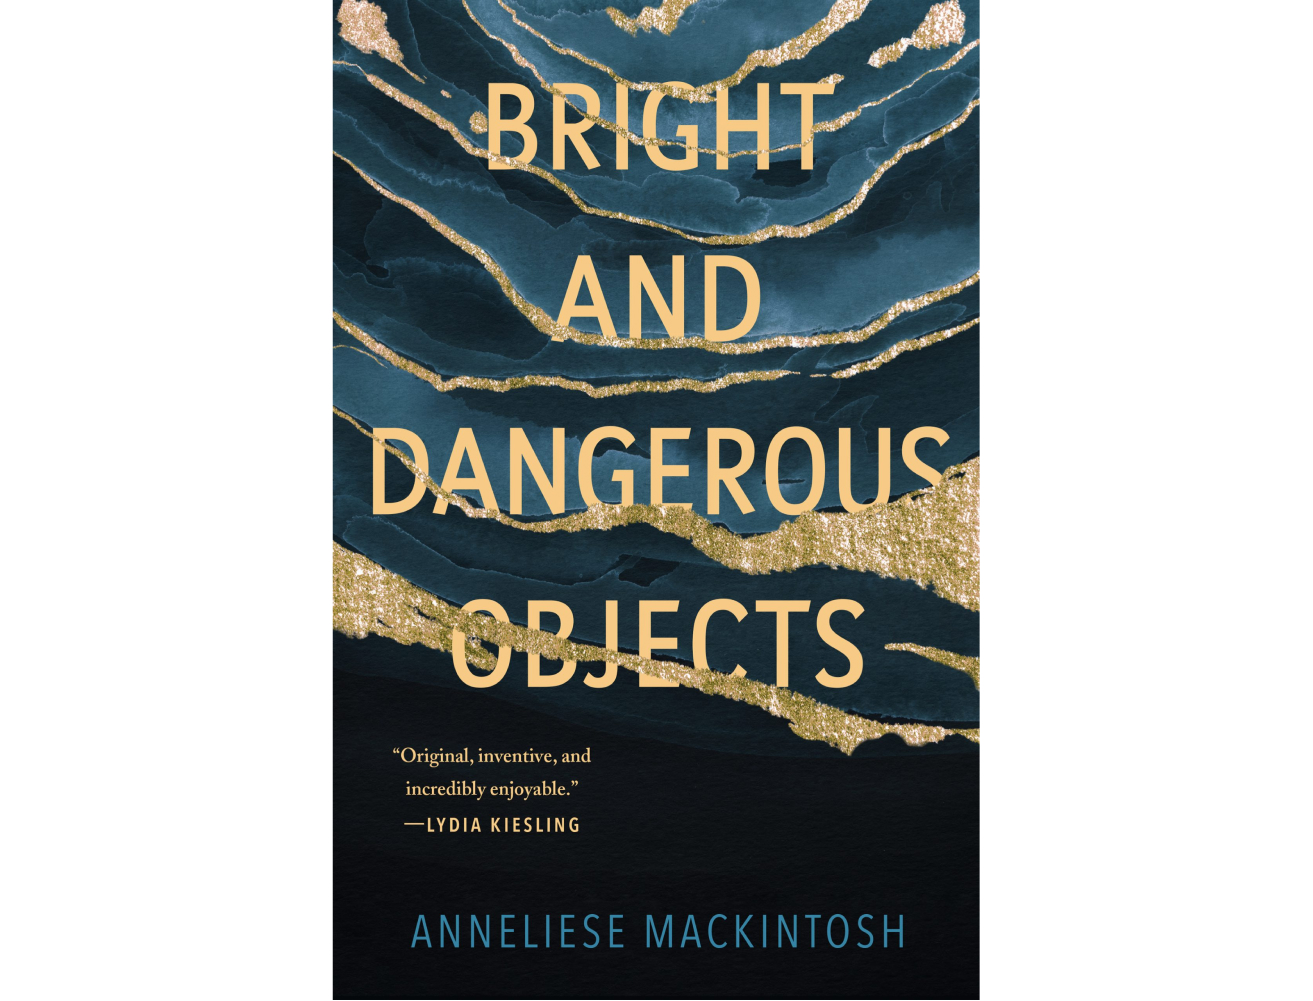 <em>Bright and Dangerous Objects</em> by Anneliese Mackintosh